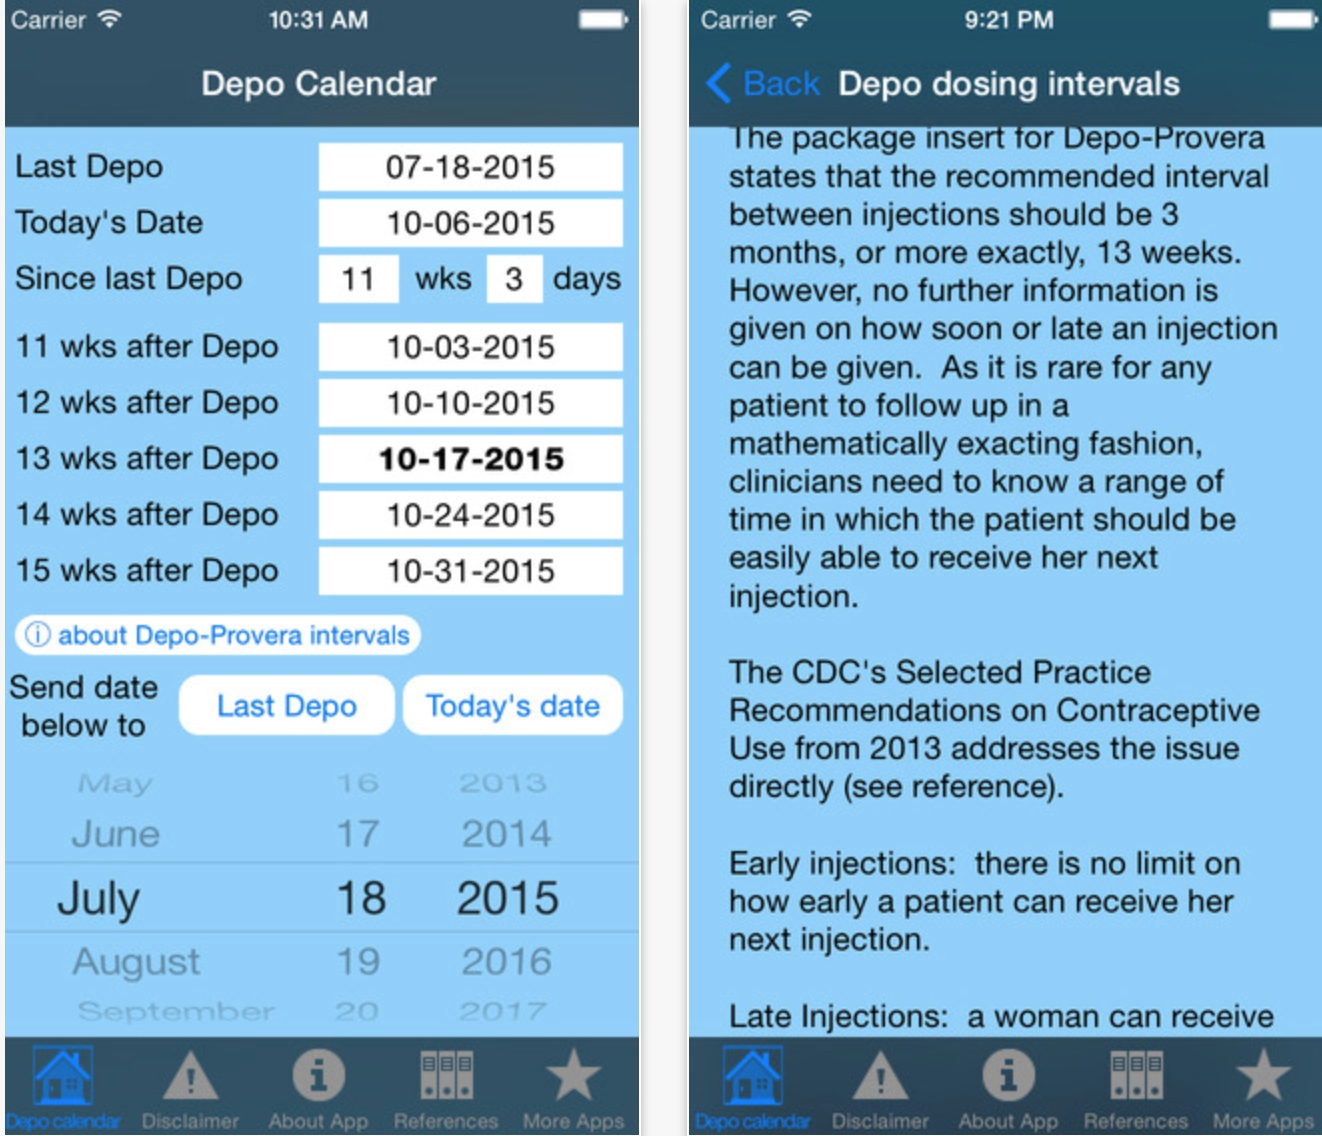 Depo Calendar App Could Significantly Improve Contraception  Depo-Provera Schedule For 2020